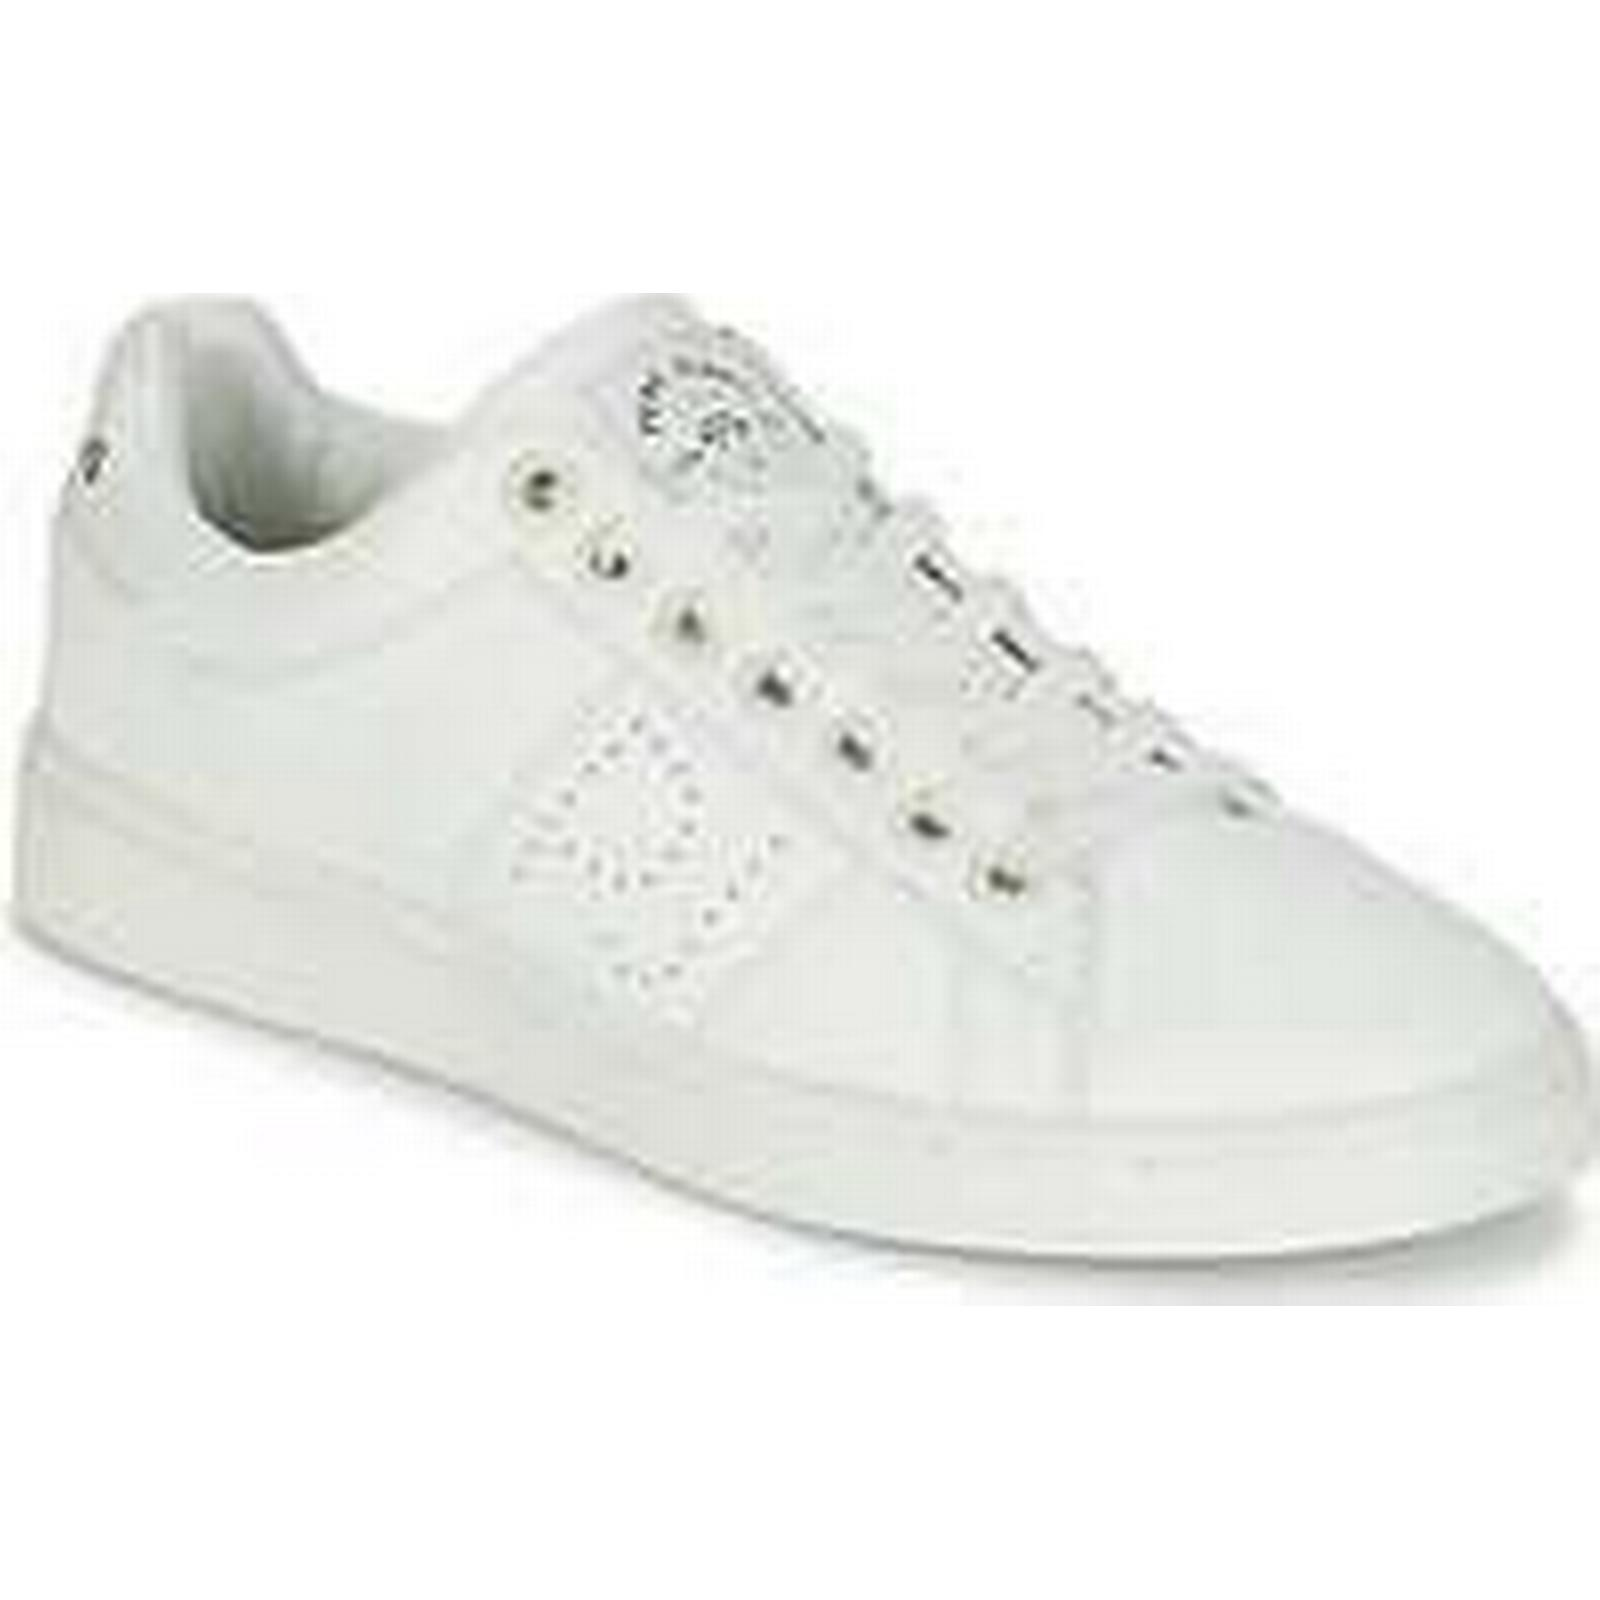 Spartoo.co.uk Pepe jeans NEW (Trainers) CLUB MONOCROME women's Shoes (Trainers) NEW in White 16d25d